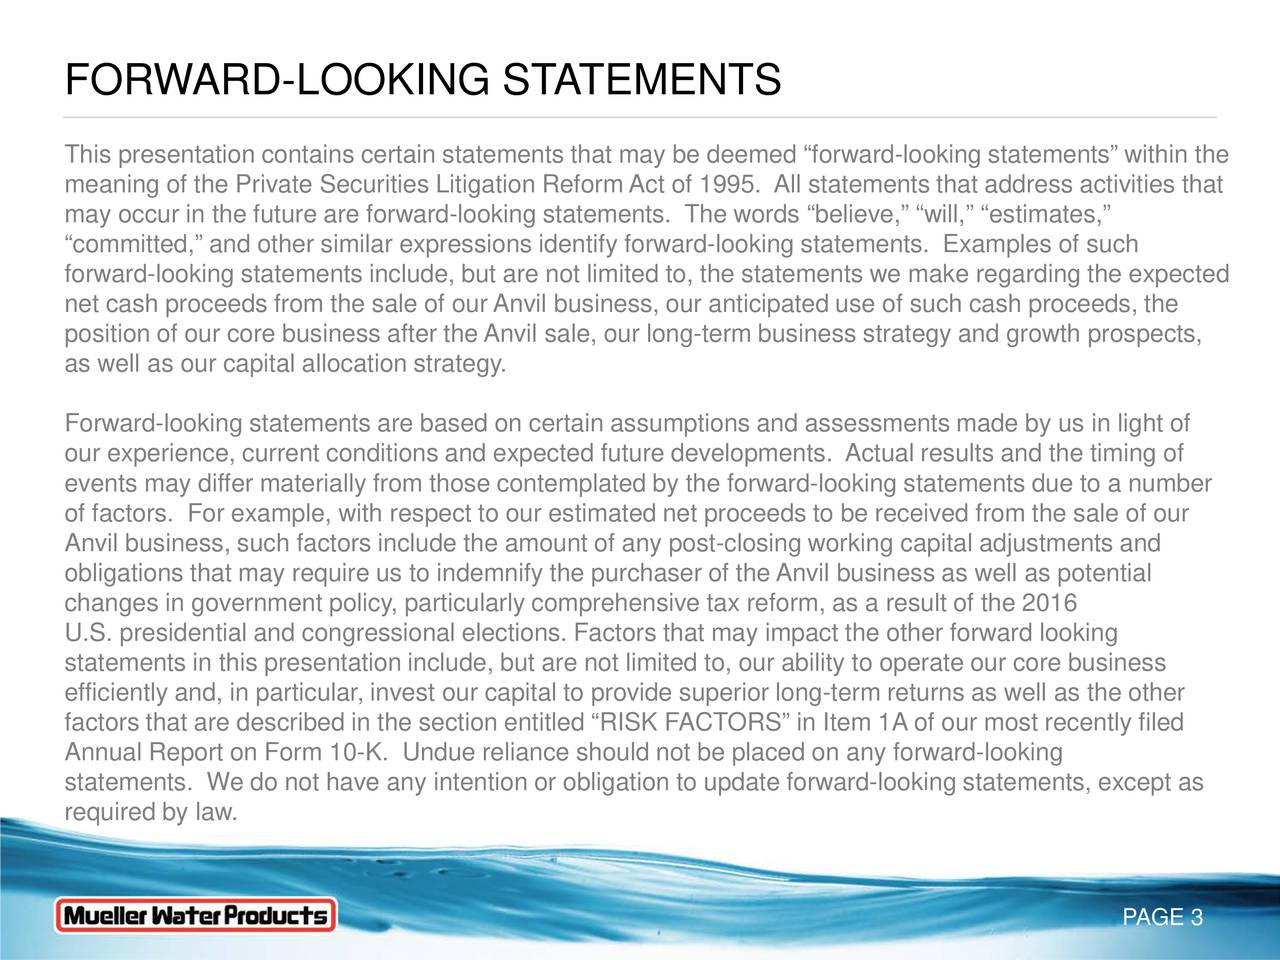 This presentation contains certain statements that may be deemed forward-looking statements within the meaning of the Private Securities Litigation Reform Act of 1995. All statements that address activities that may occur in the future are forward-looking statements. The words believe, will, estimates, committed, and other similar expressions identify forward-looking statements. Examples of such forward-looking statements include, but are not limited to, the statements we make regarding the expected net cash proceeds from the sale of our Anvil business, our anticipated use of such cash proceeds, the position of our core business after the Anvil sale, our long-term business strategy and growth prospects, as well as our capital allocation strategy. Forward-looking statements are based on certain assumptions and assessments made by us in light of our experience, current conditions and expected future developments. Actual results and the timing of events may differ materially from those contemplated by the forward-looking statements due to a number of factors. For example, with respect to our estimated net proceeds to be received from the sale of our Anvil business, such factors include the amount of any postclosing working capital adjustments and obligations that may require us to indemnify the purchaser of the Anvil business as well as potential changes in government policy, particularly comprehensive tax reform, as a result of the 2016 U.S. presidential and congressional elections. Factors that may impact the other forward looking statements in this presentation include, but are not limited to, our ability to operate our core business efficiently and, in particular, invest our capital to provide superi-term returns as well as the other factors that are described in the section entitled RISK FACTORS in Item 1A of our most recently filed Annual Report on Form 10-K. Undue reliance should not be placed on any forward-looking statements. We do not have any intention or obligation to update forward-looking statements, except as required by law. PAGE 3